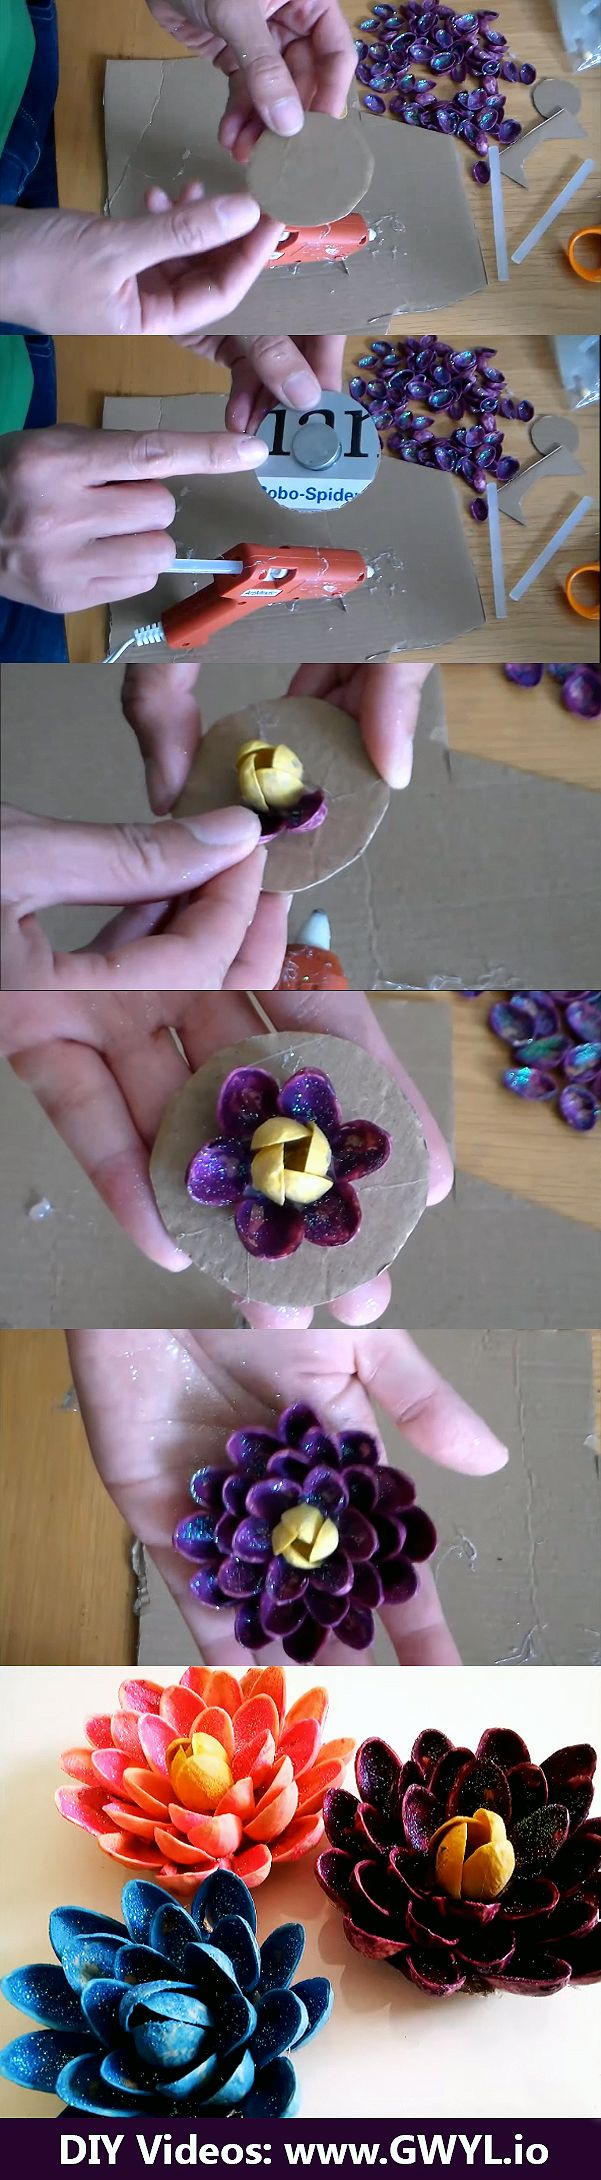 Are you wondering where to put all those pistachio shells after polishing off a bag? Don't throw them, instead, upcycle them! | Create Flowers Out Of Pistachio Shells | See the video and written instructions here: http://gwyl.io/create-flowers-pistachio-shells/